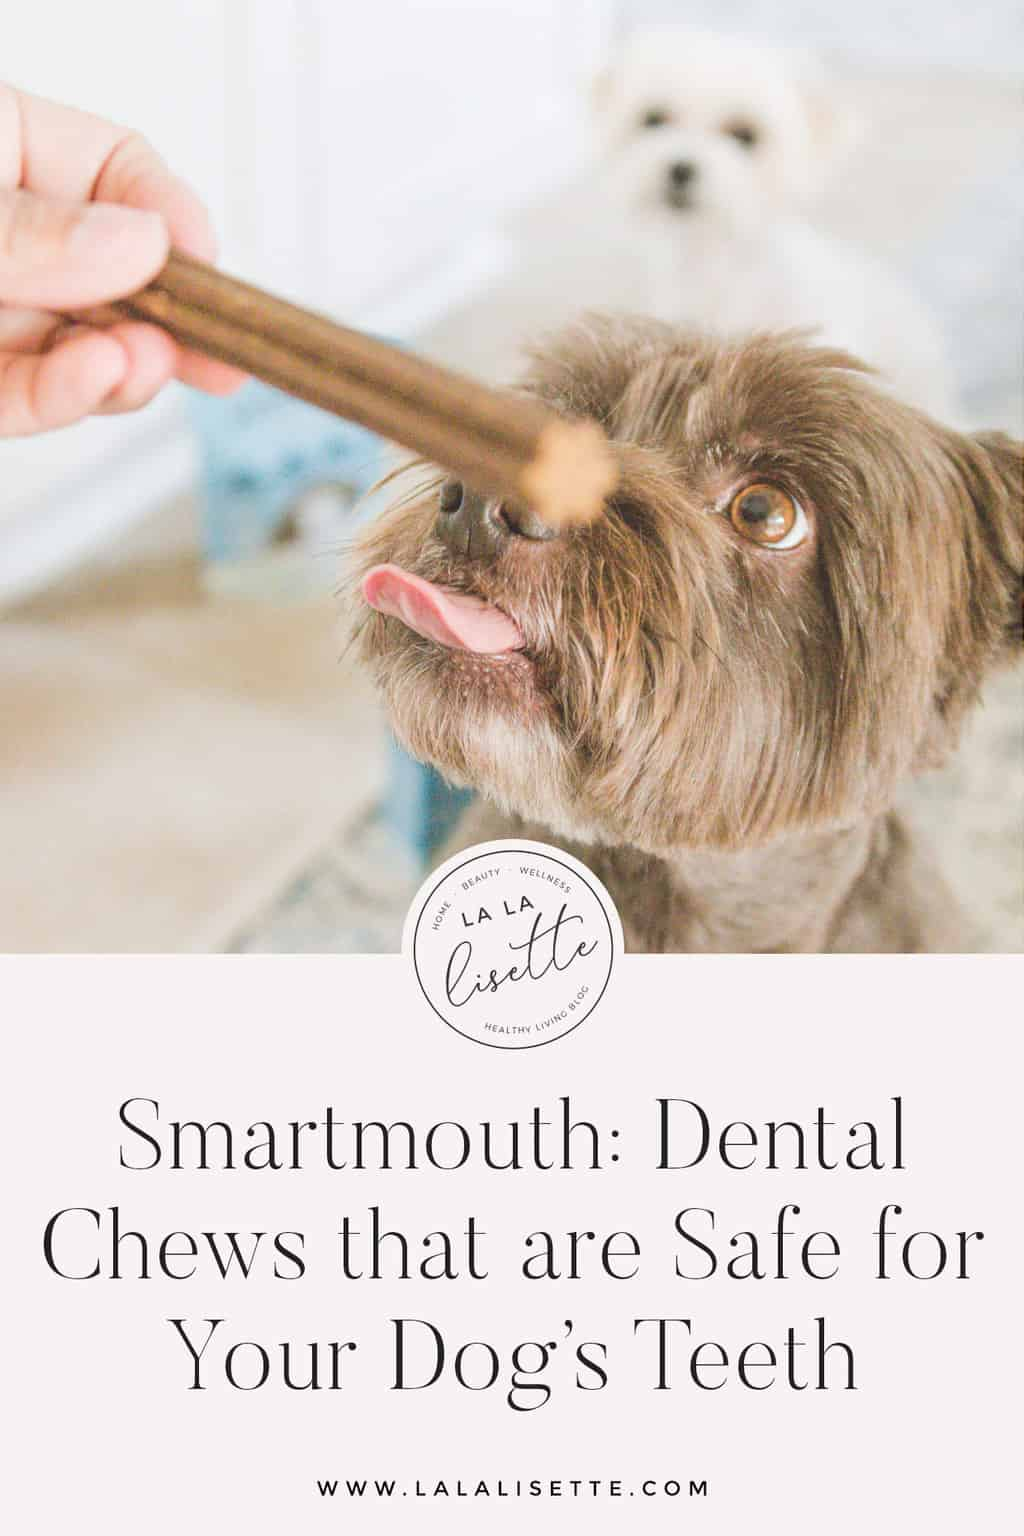 Smartmouth dental chews are safe dog chews that help keep your dog's teeth clean, freshen breath, and support joint health with non-GMO ingredients